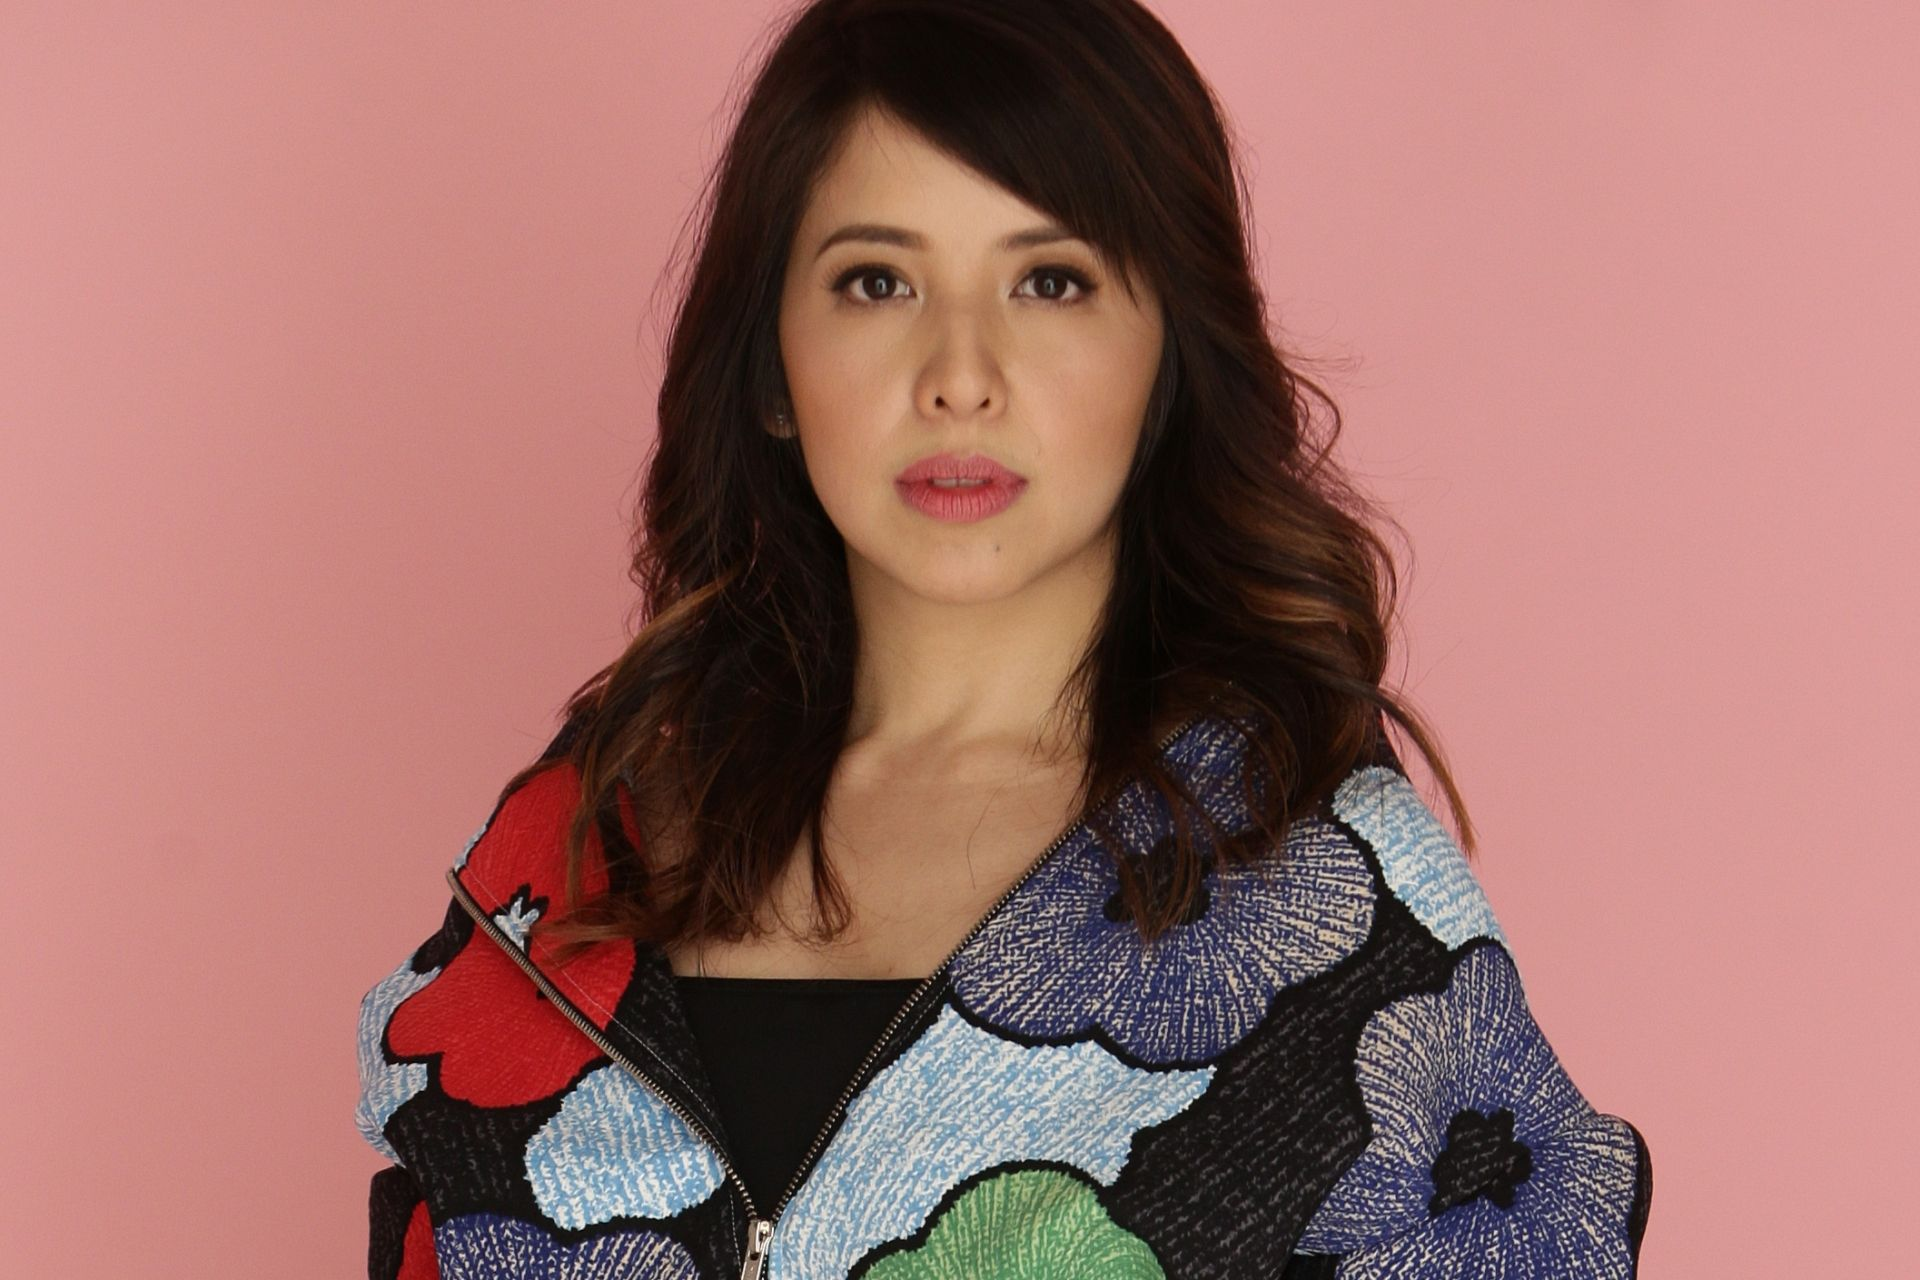 Red Turnip Theatre's Jenny Jamora On The State Of Theatre And Performance In The PH